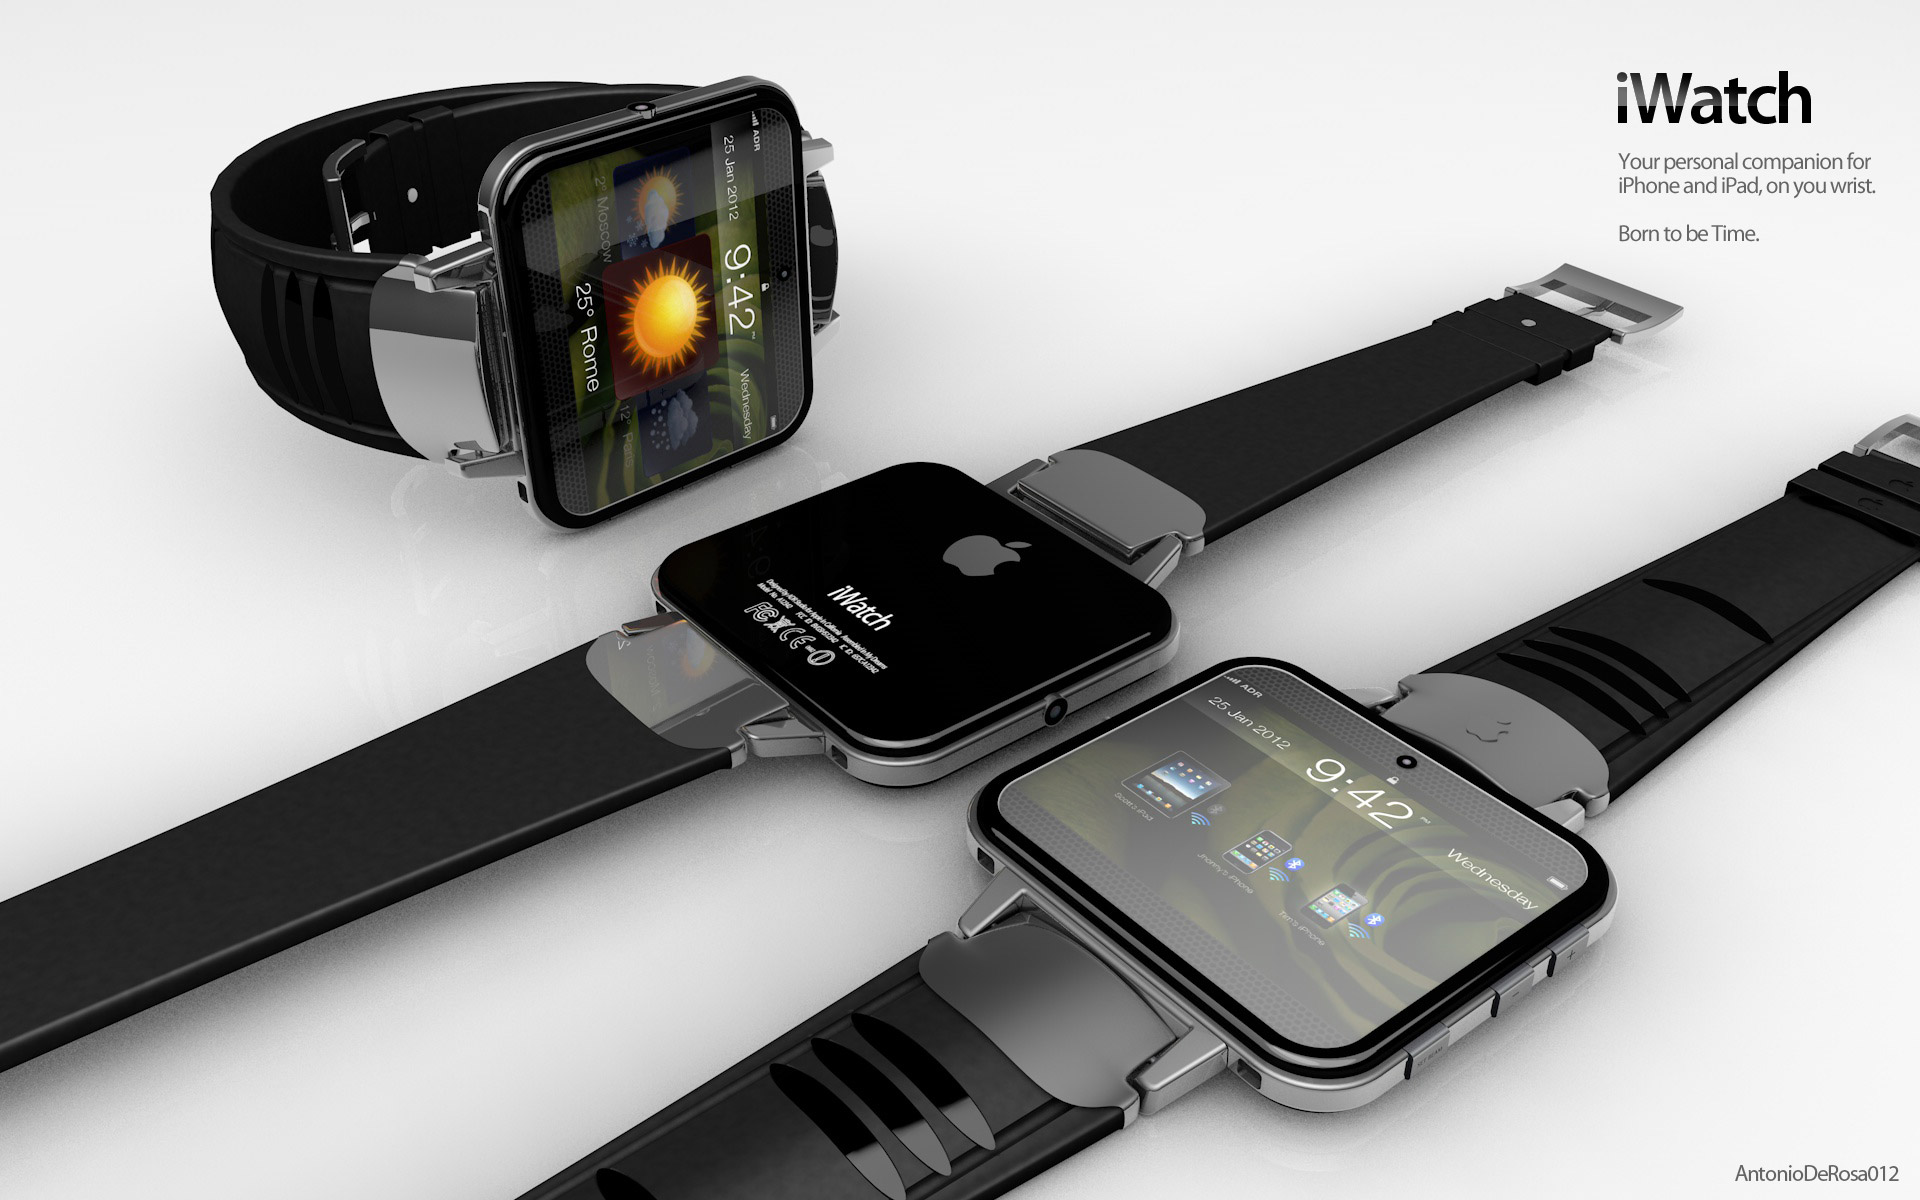 iWatch 06 - Apple iWatch : déjà des prototypes en tests ?